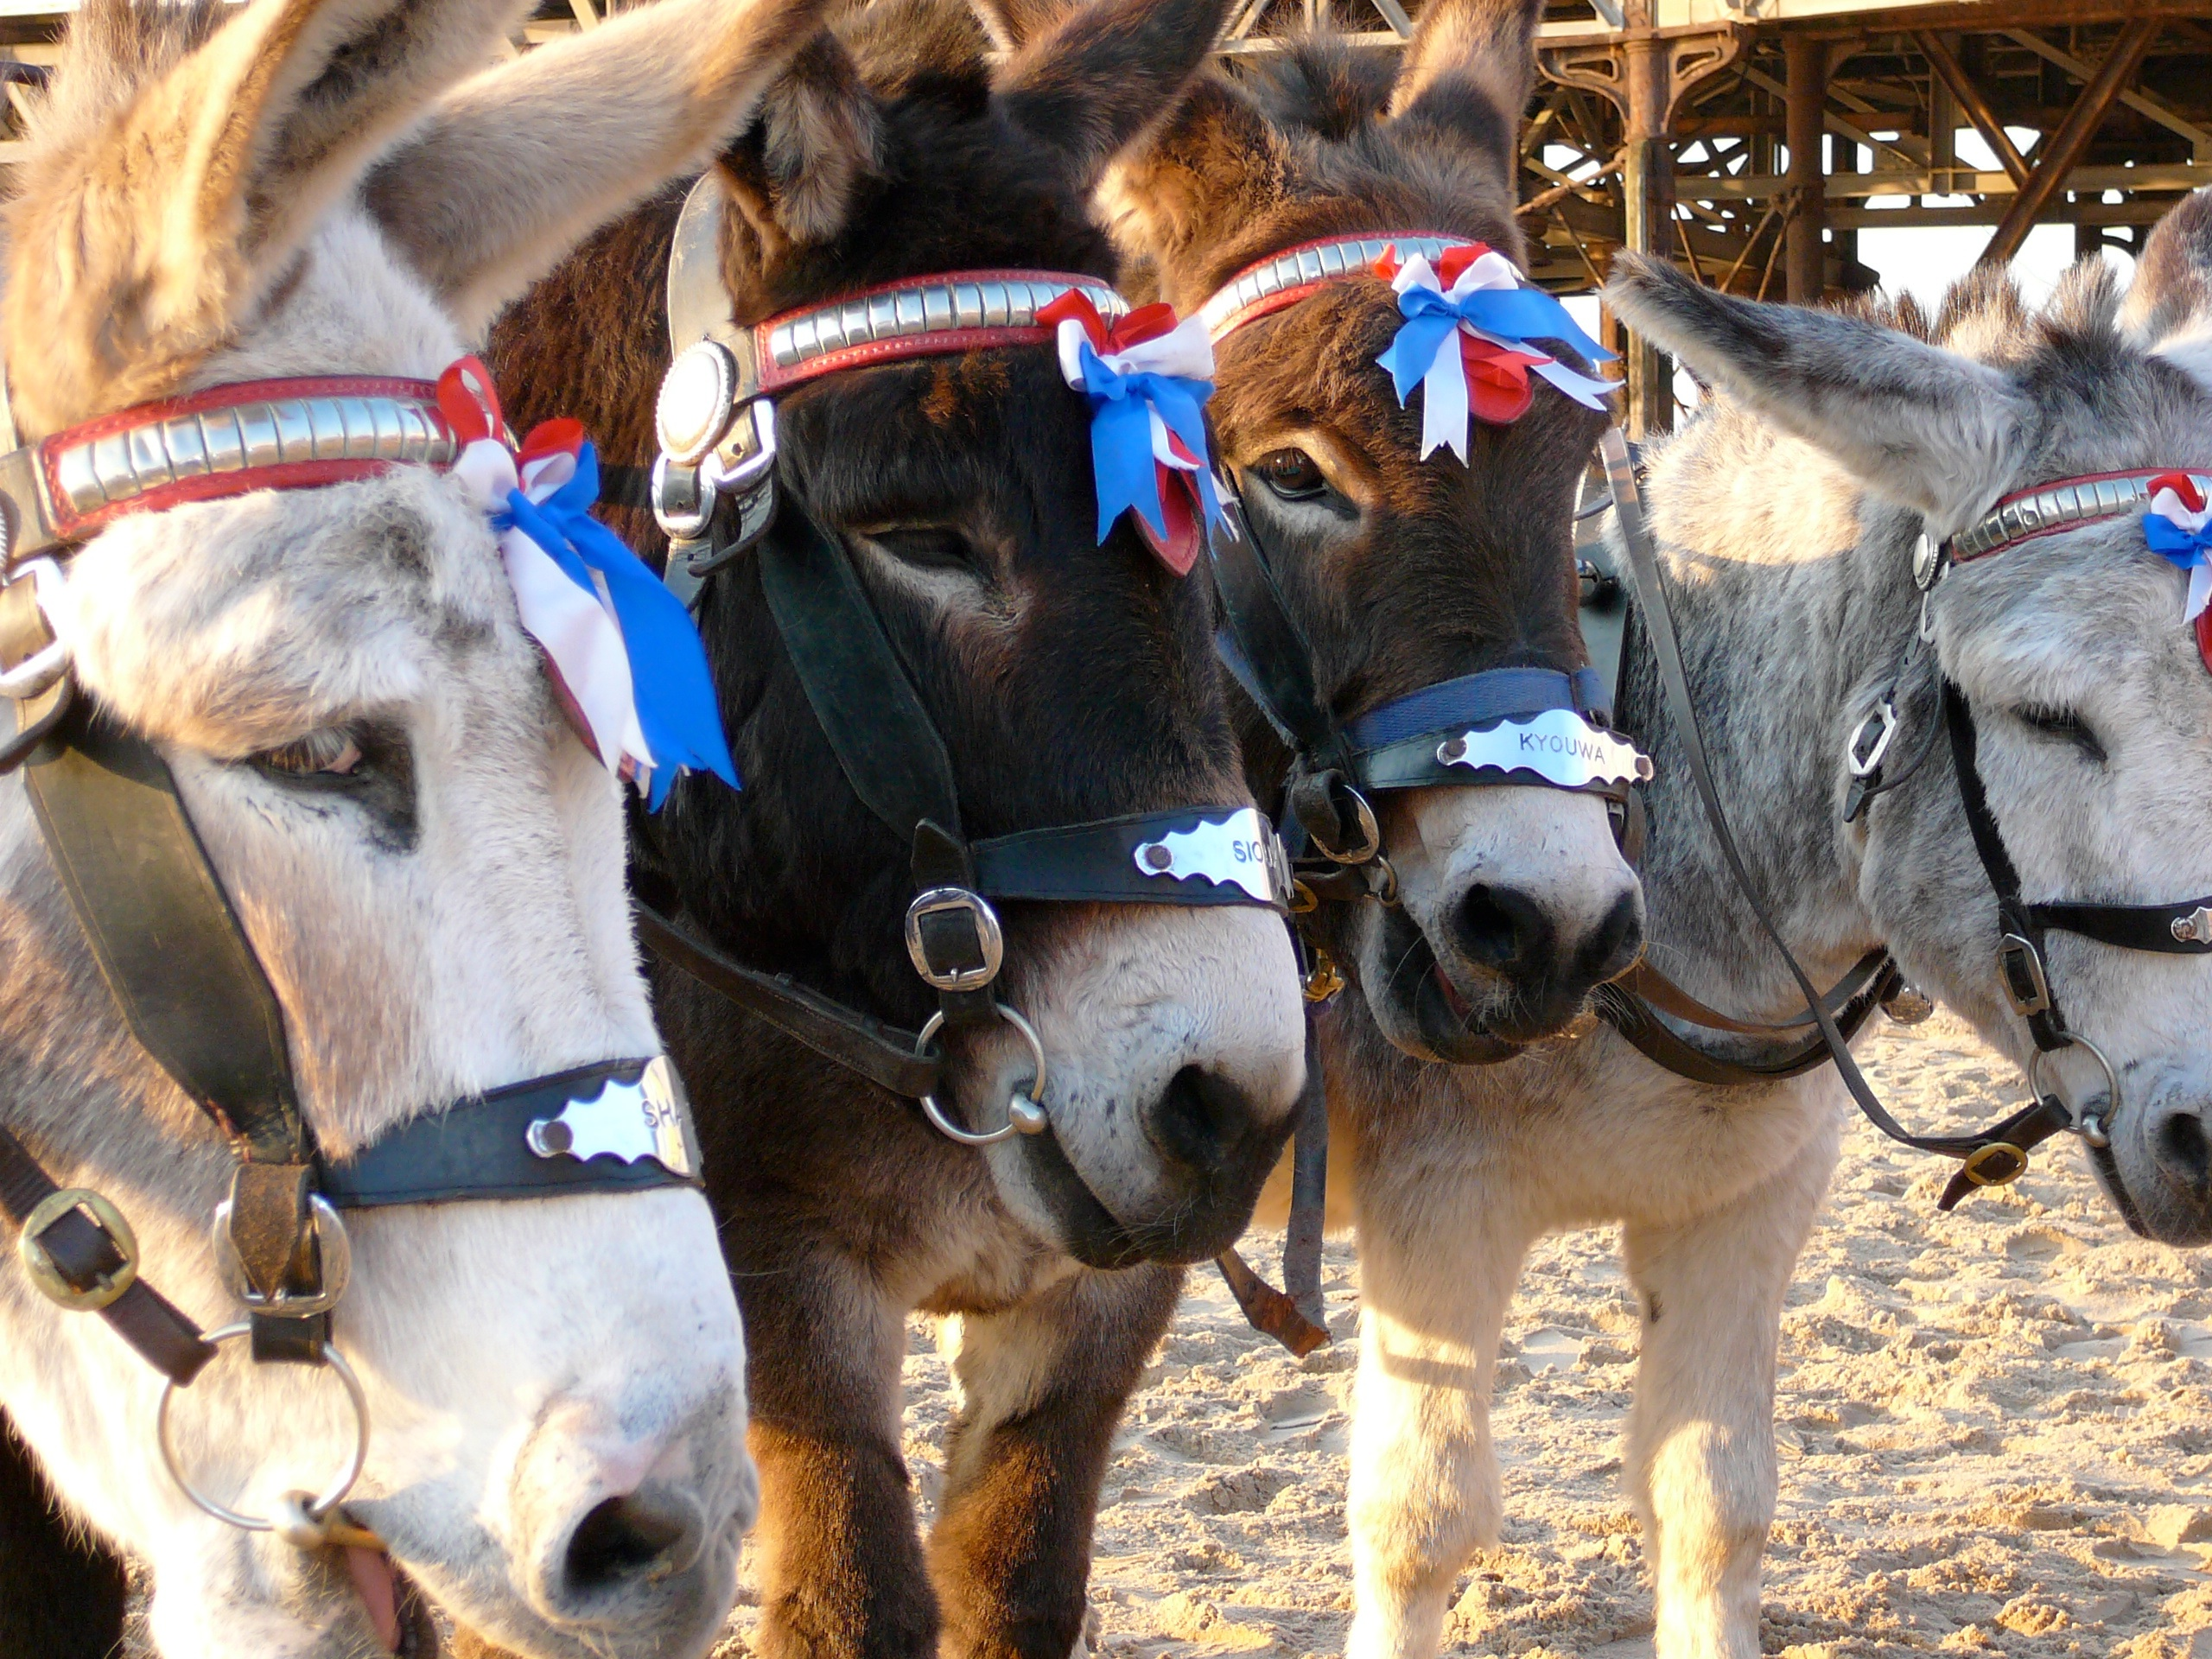 Donkeys in Blackpool, England